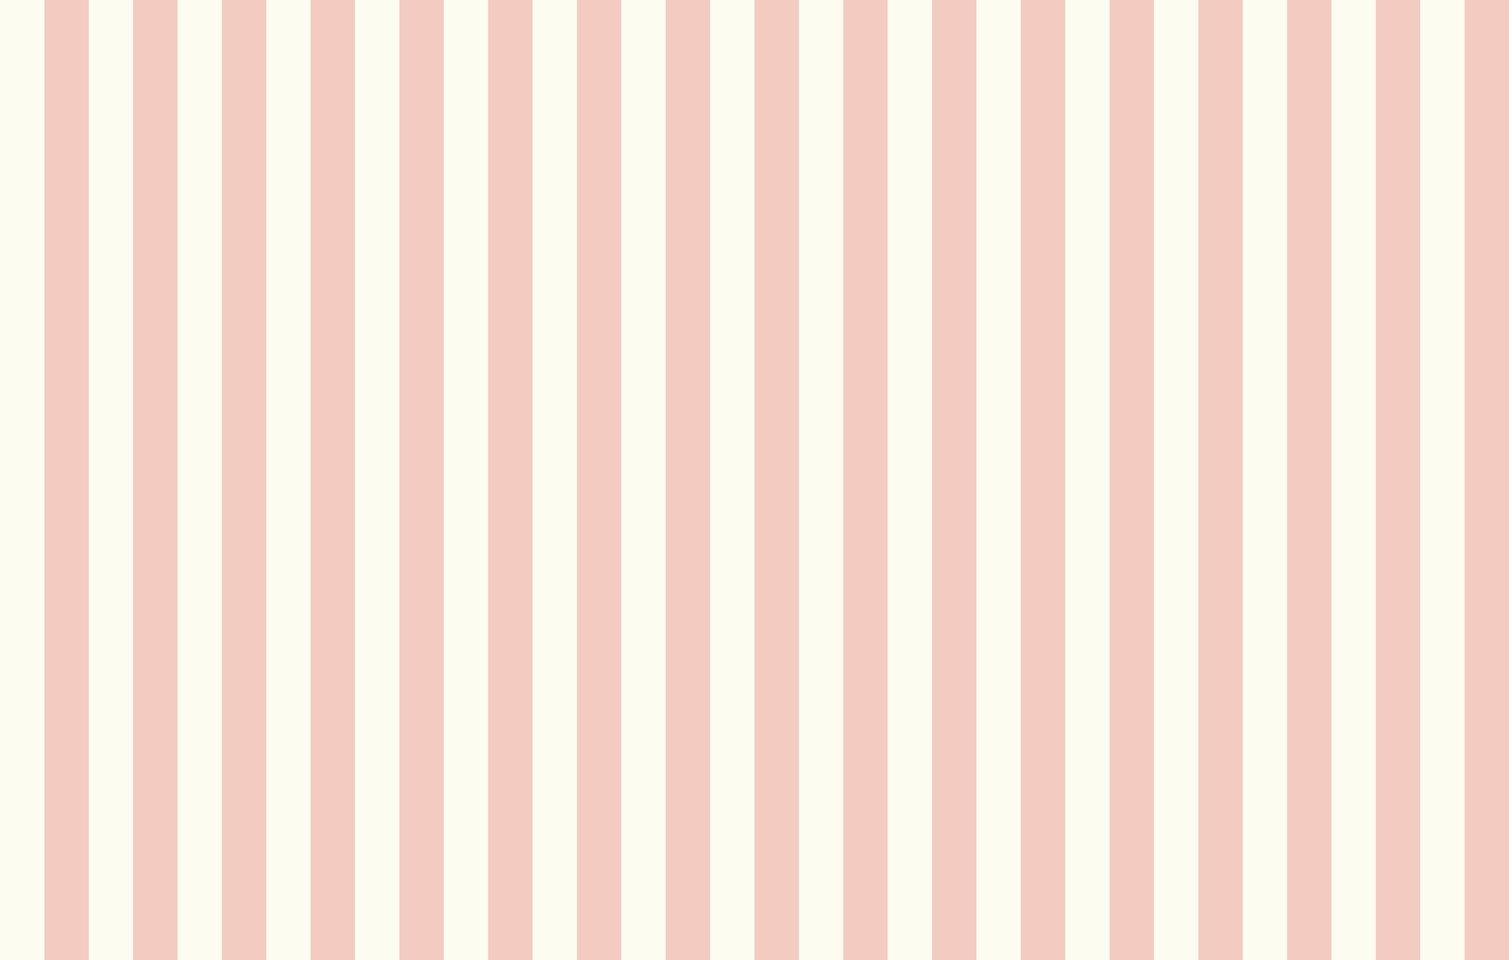 Pink Lines Ogq Backgrounds Hd с